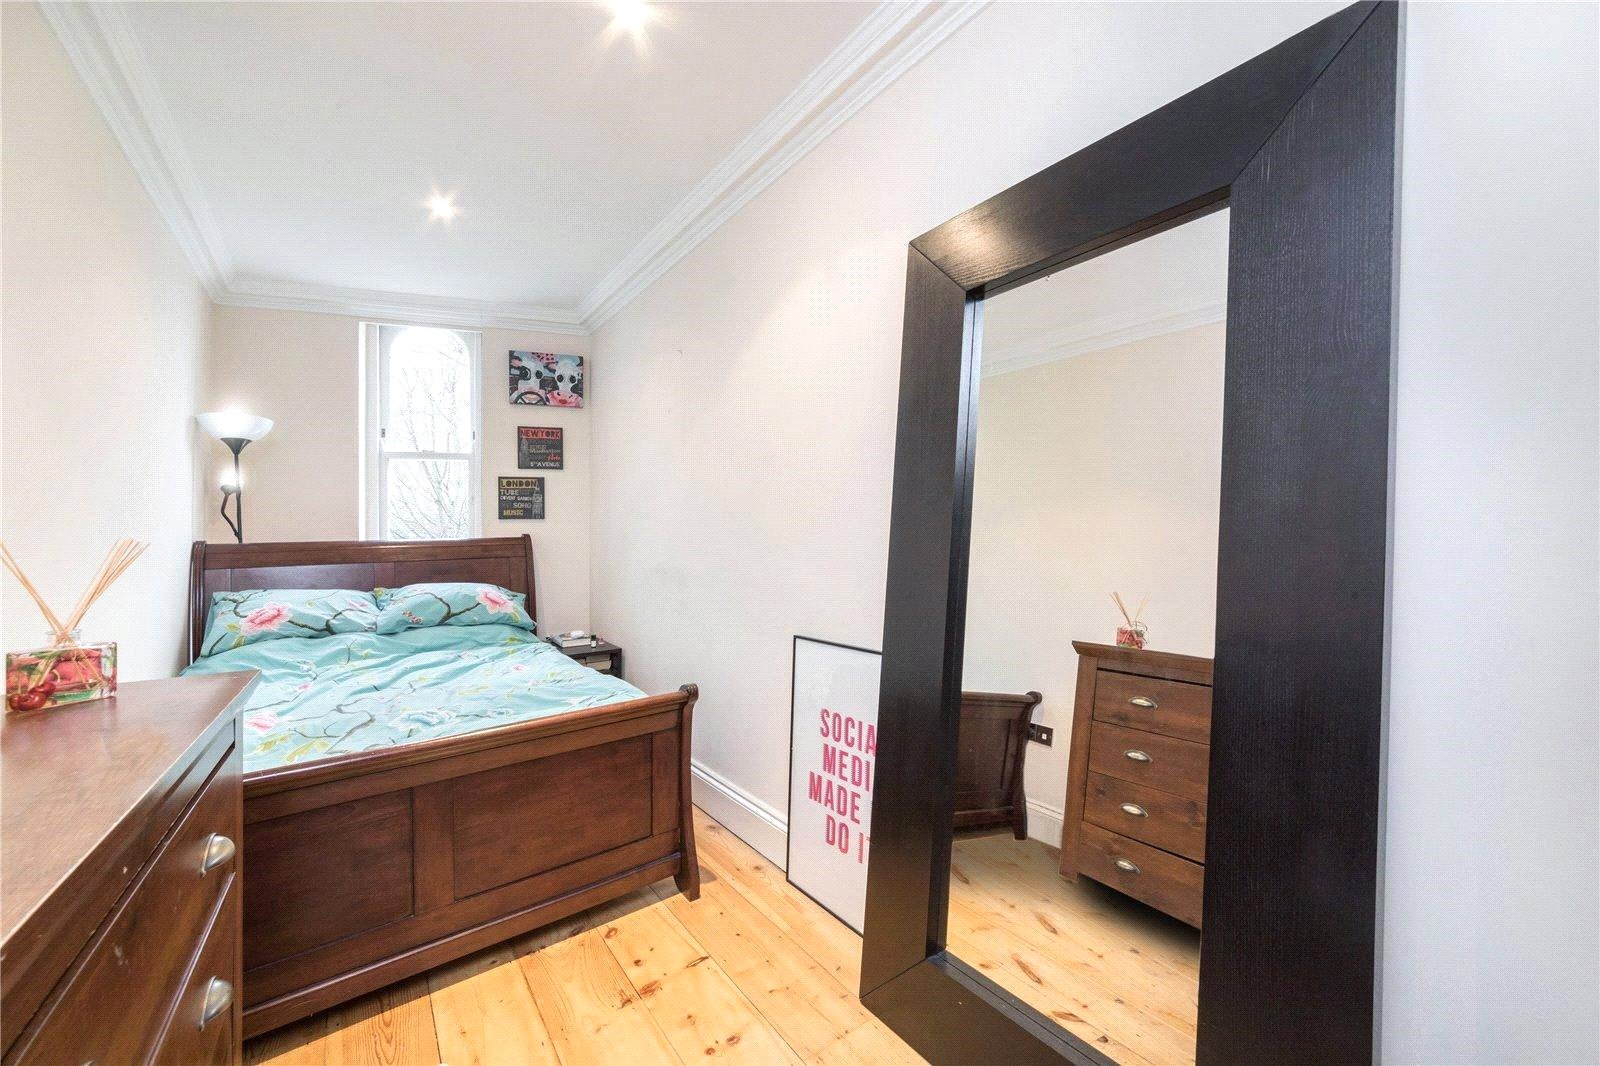 2 bed apartment to rent in Arsenal, N5 1LU  - Property Image 3